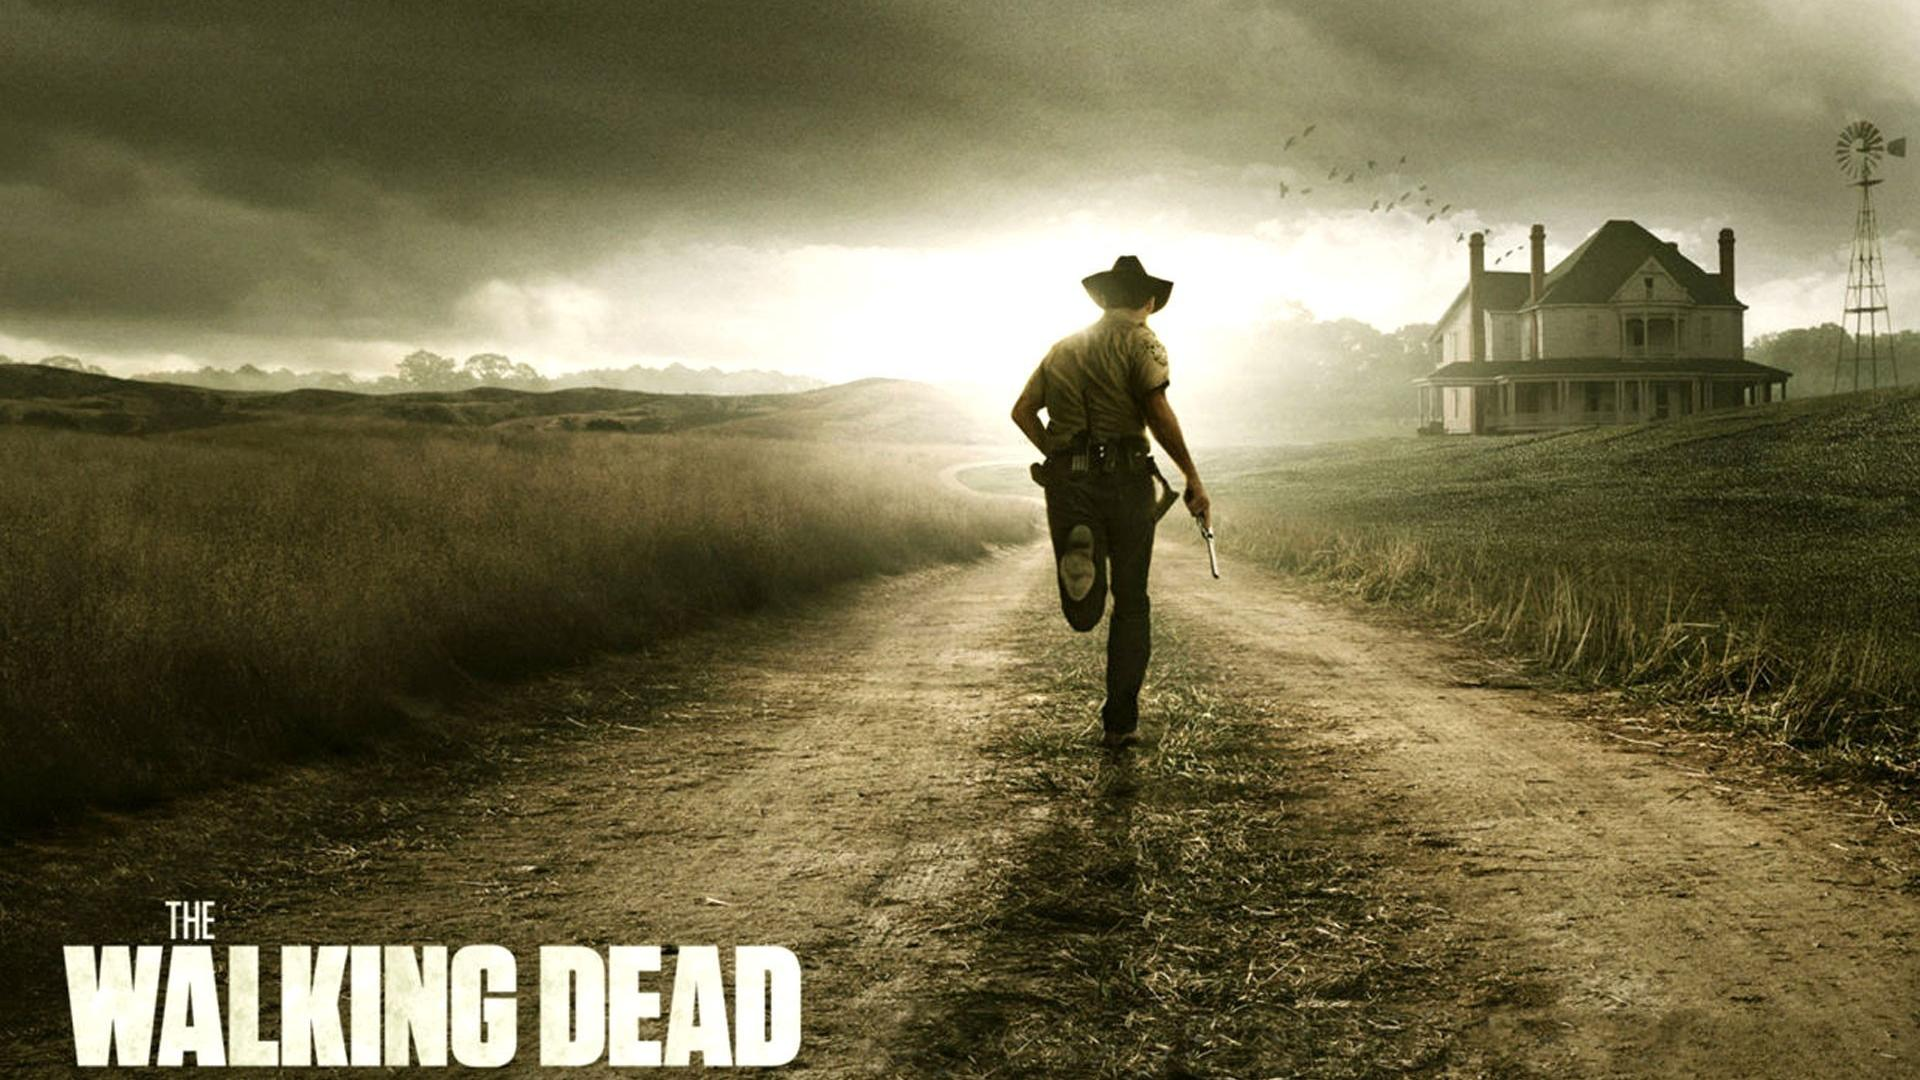 The Walking Dead Show Or Comic Which Is Better